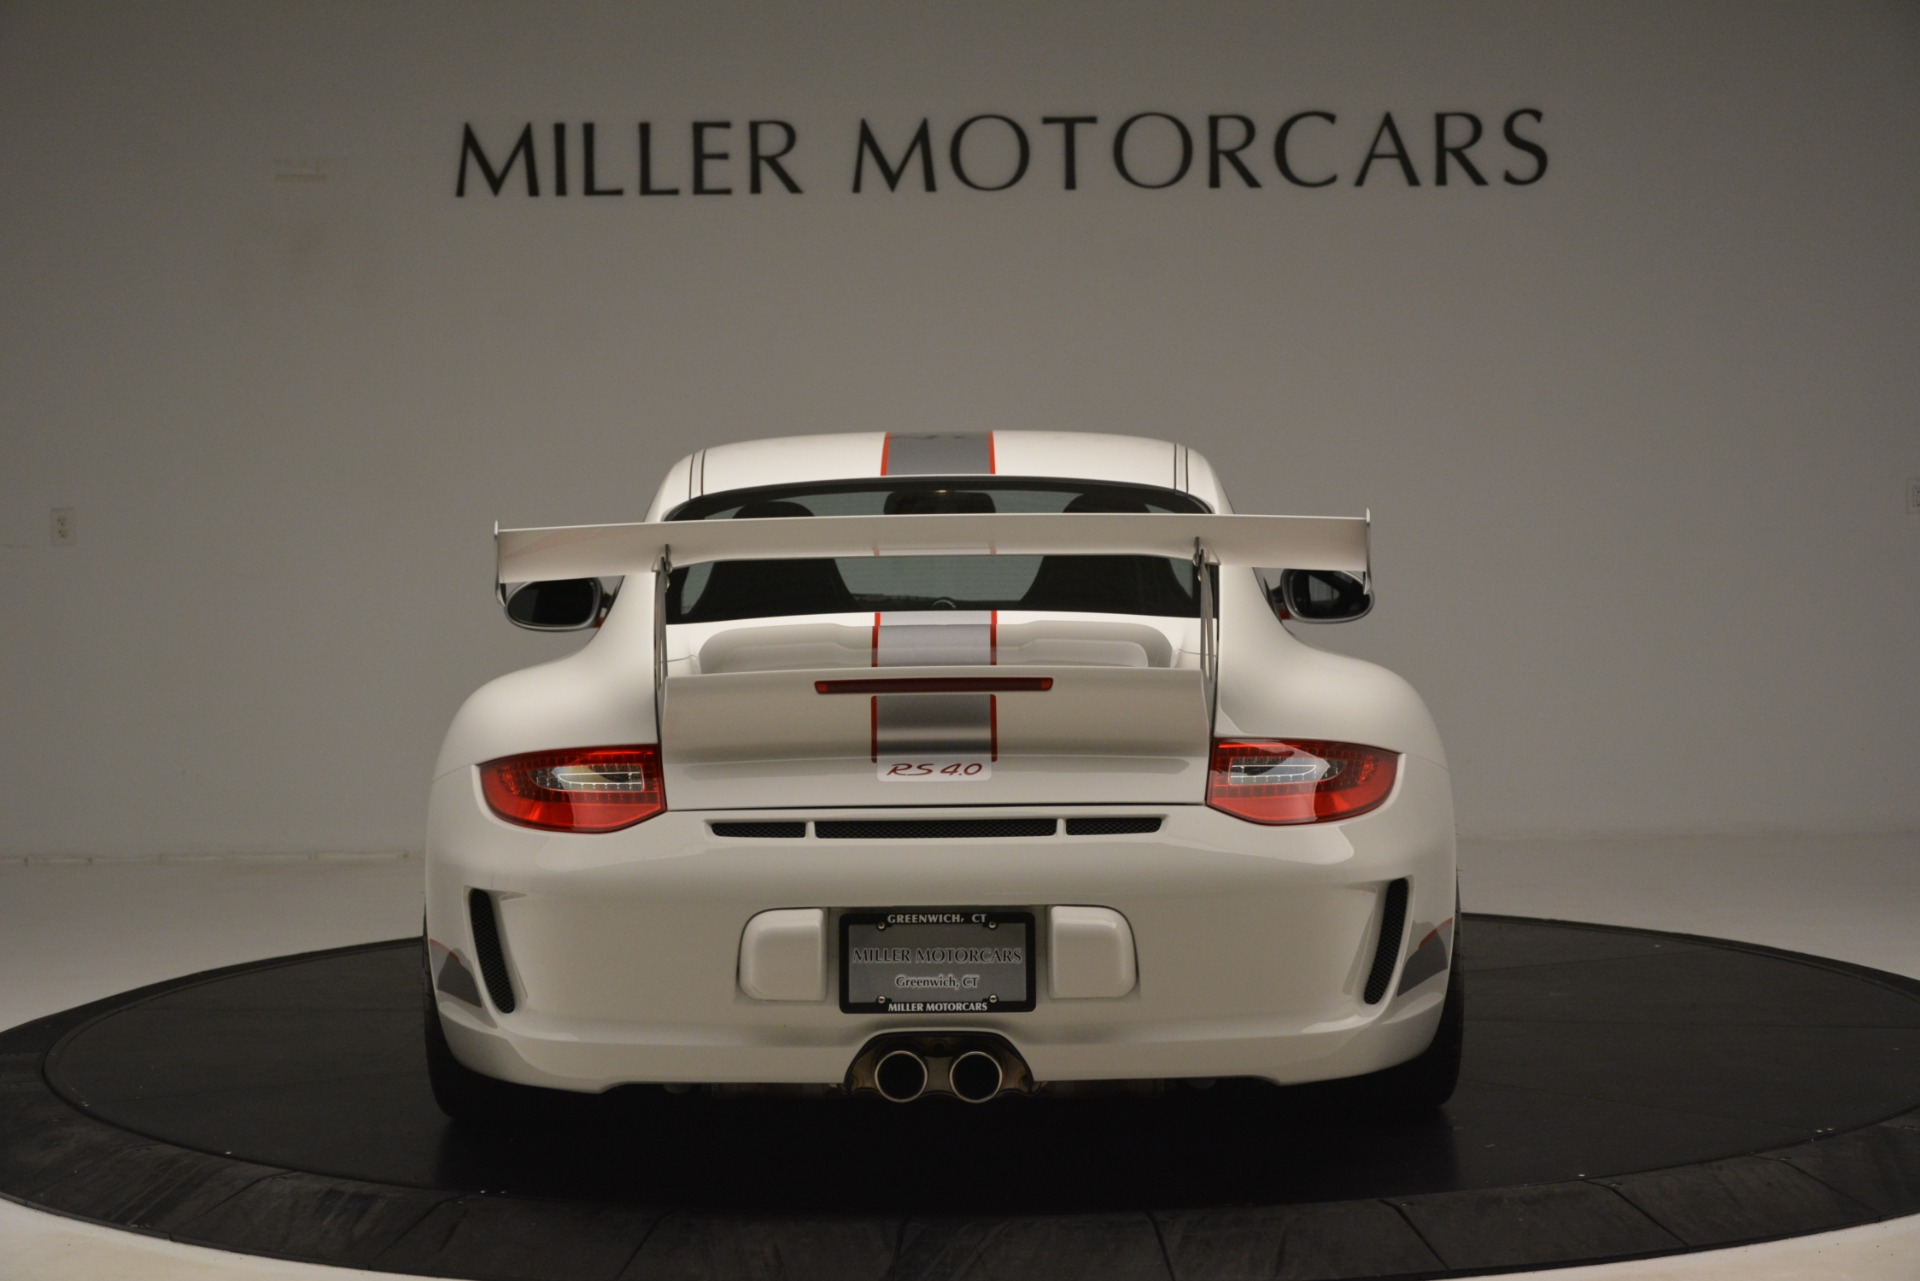 Used 2011 Porsche 911 GT3 RS 4.0 For Sale In Westport, CT 3188_p6